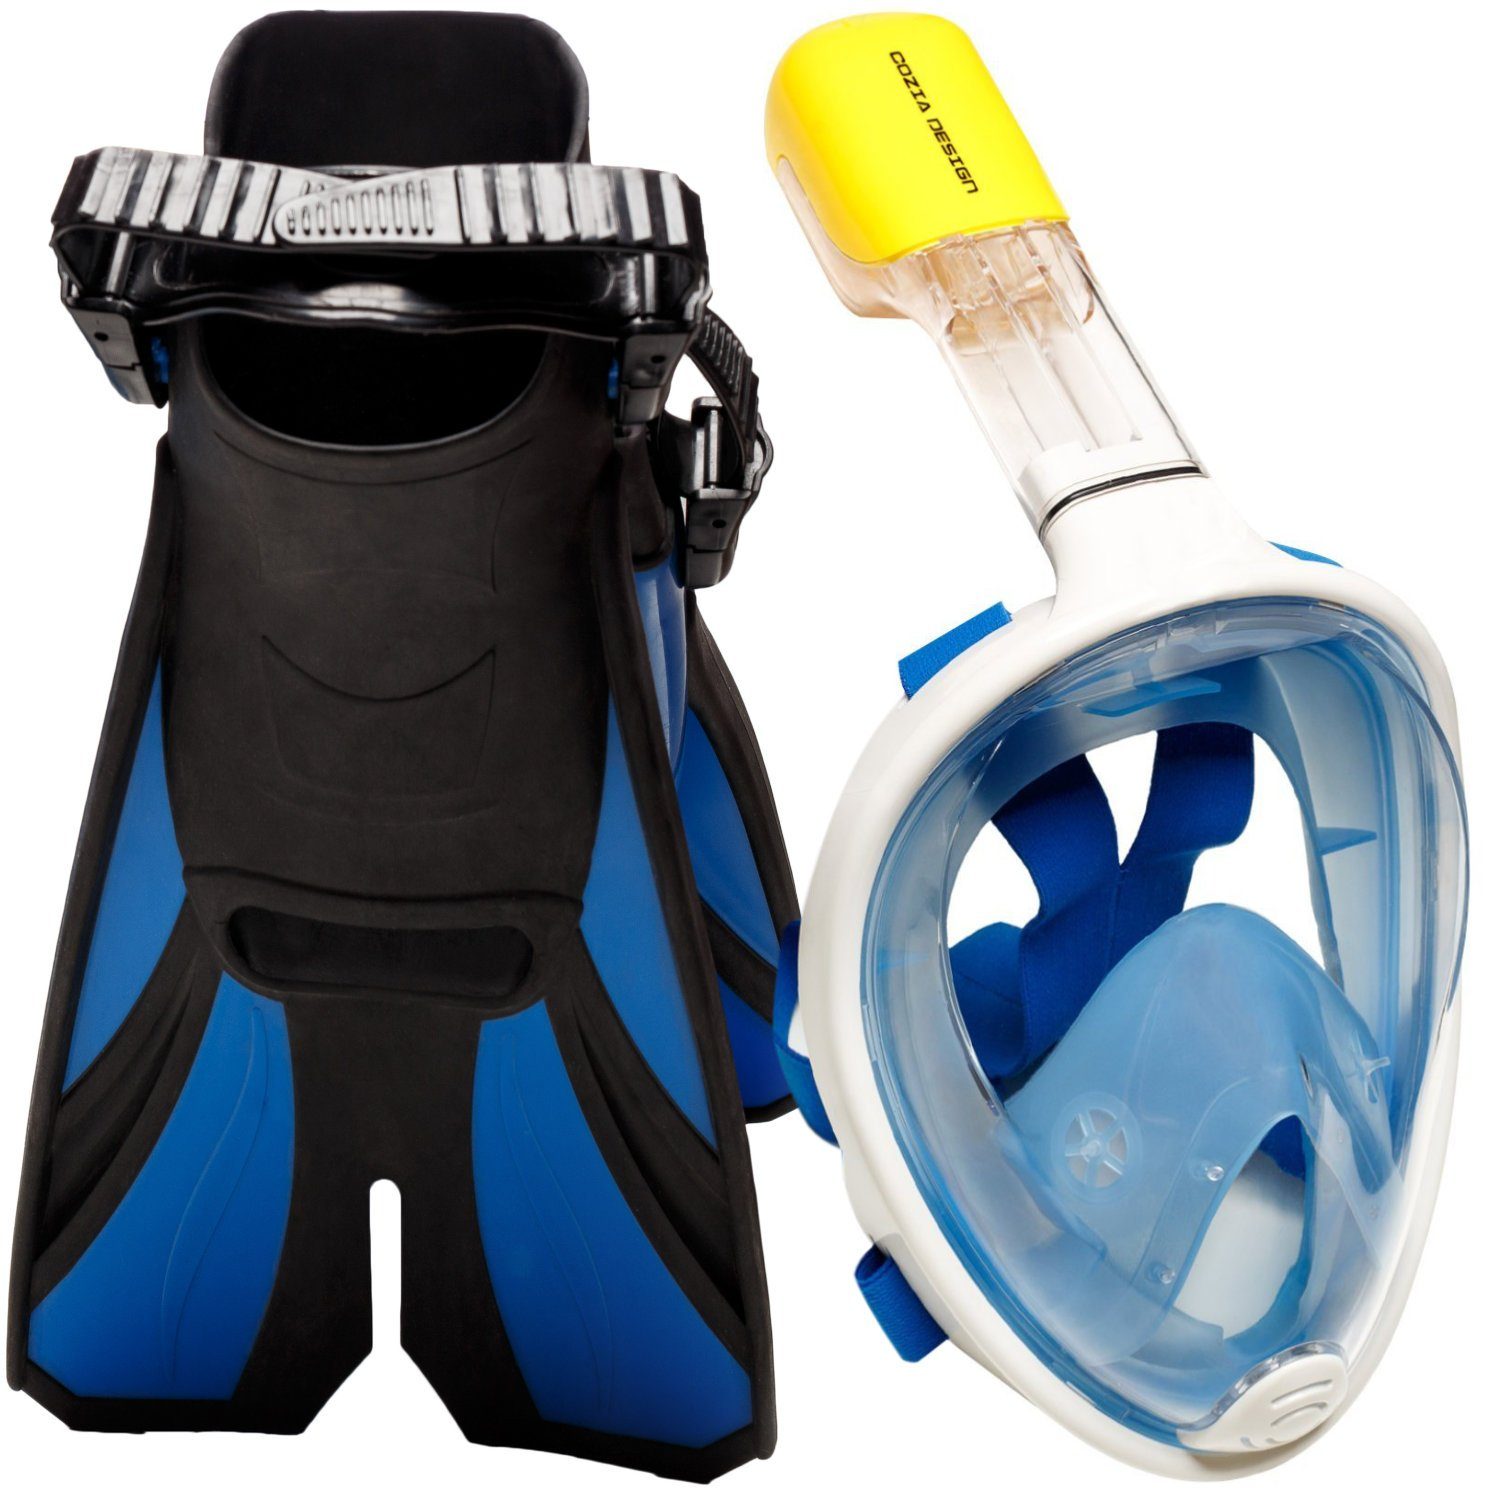 COZIA Design Snorkel Set with Snorkel MASK Swim FINS Included Free Breathing Snorkel MASK Full FACE 180 Panoramic View Full face Snorkel mask and Open Heel Snorkel fins Blue Large